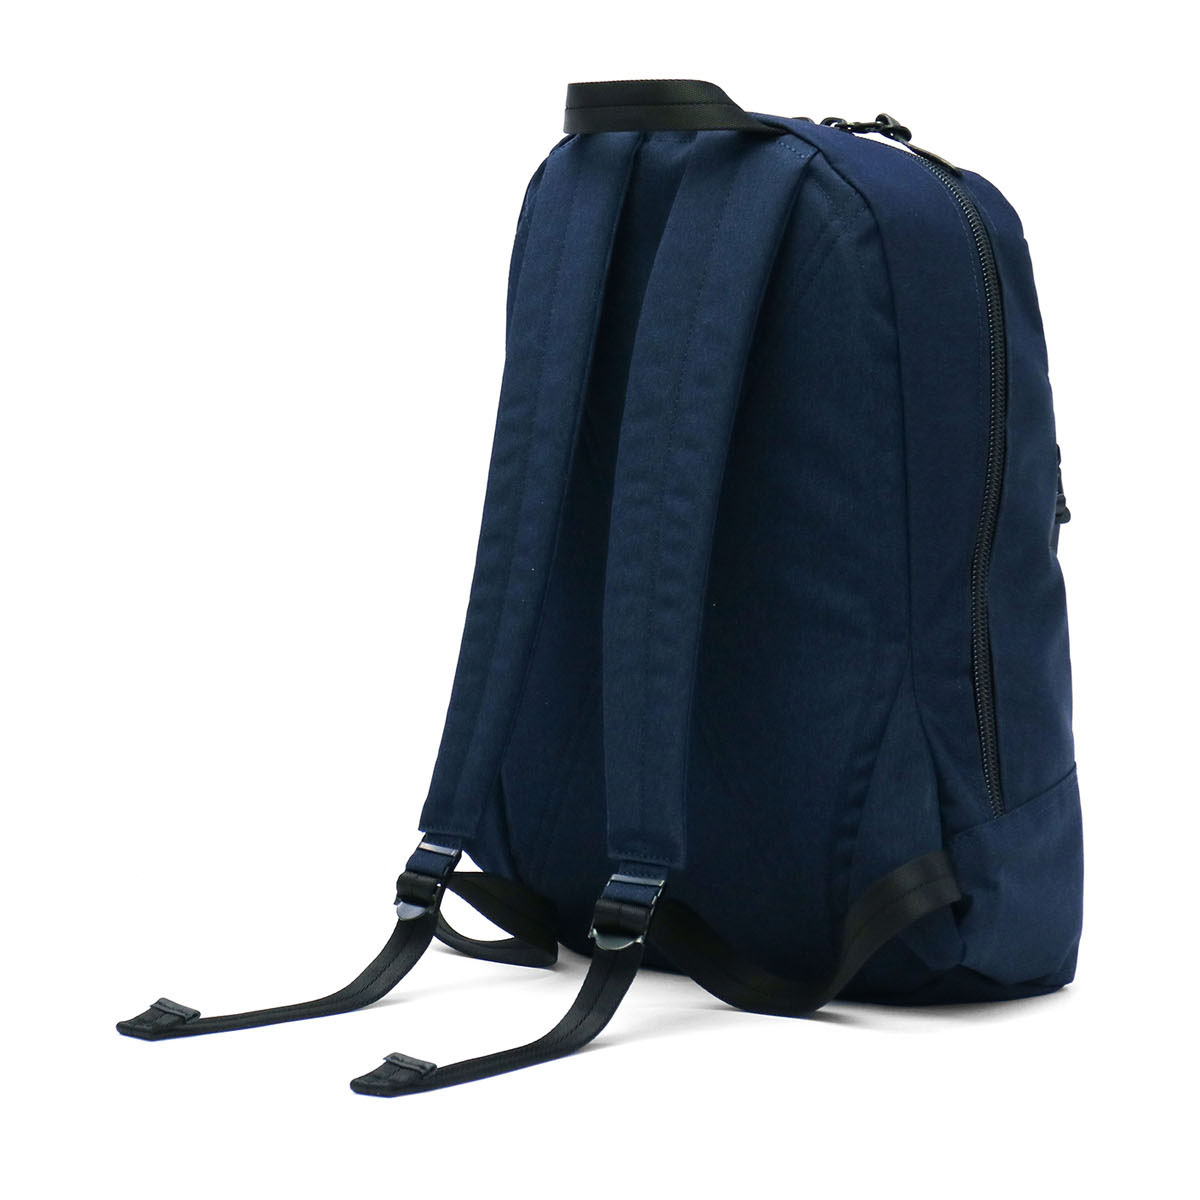 46abf34c90f4 ... samsonite backpack online ping india fenix toulouse handball ...